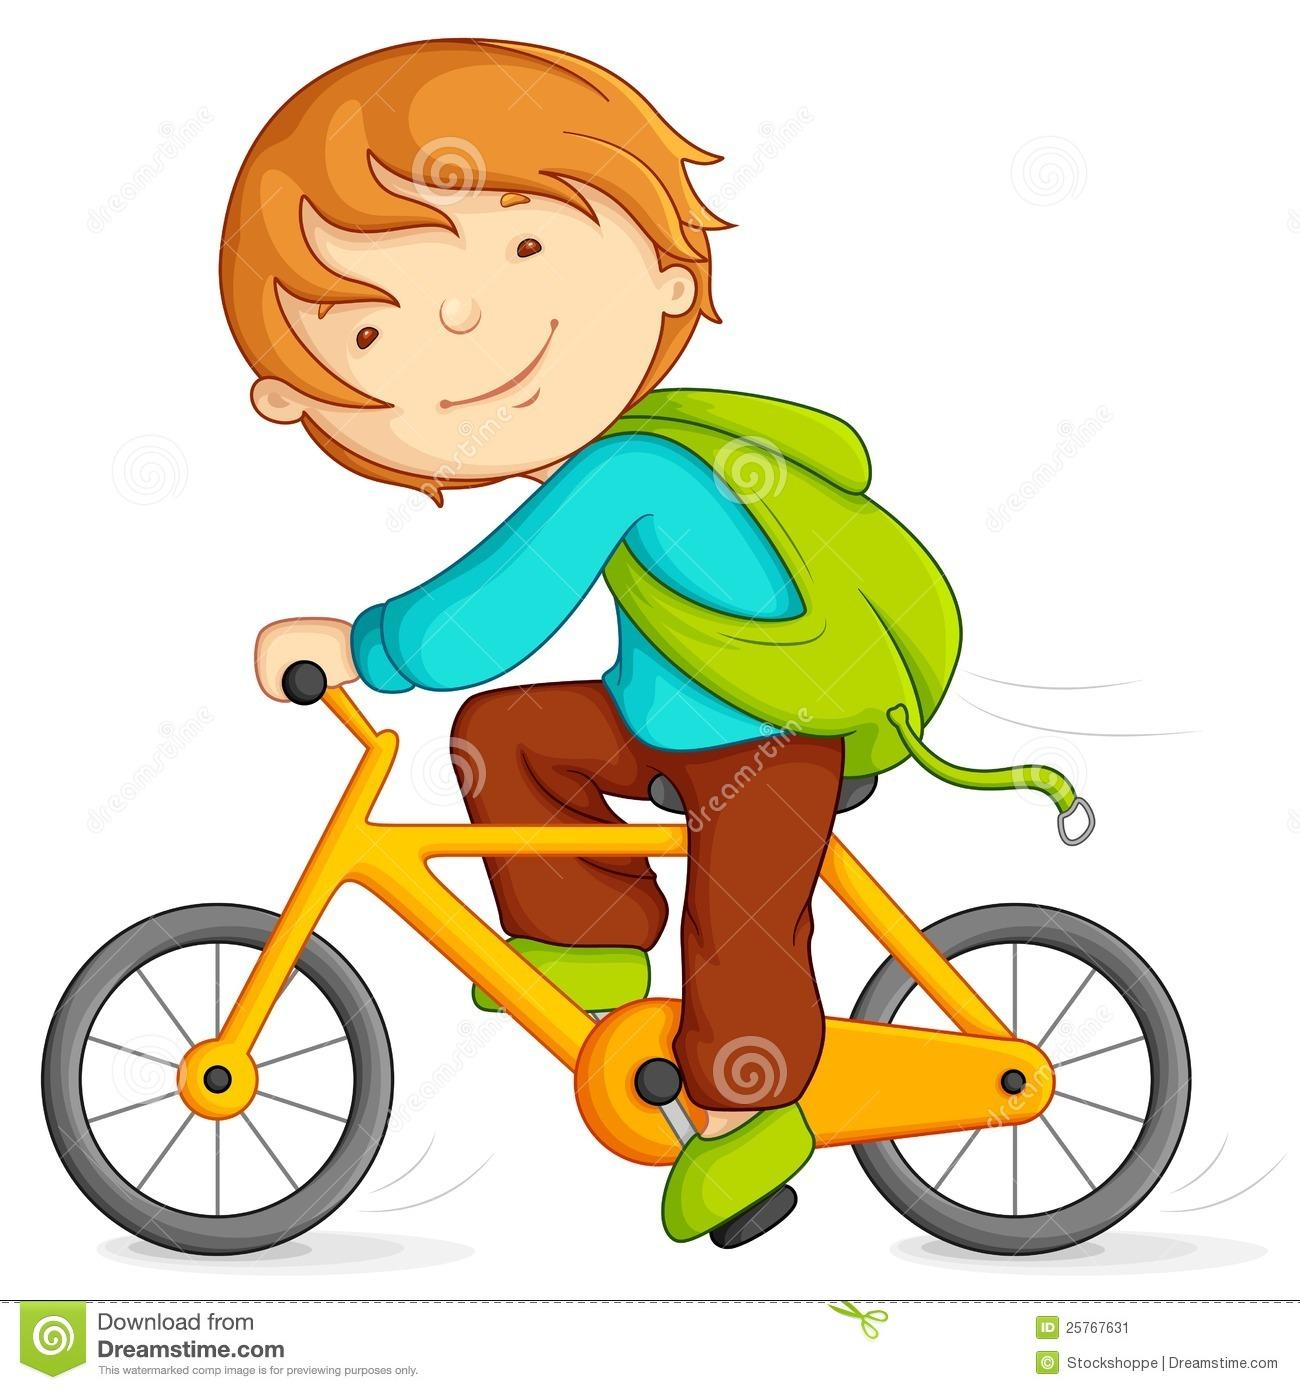 Bicycle clipart kid tricycle A Clipart boy tricycle Tricycle